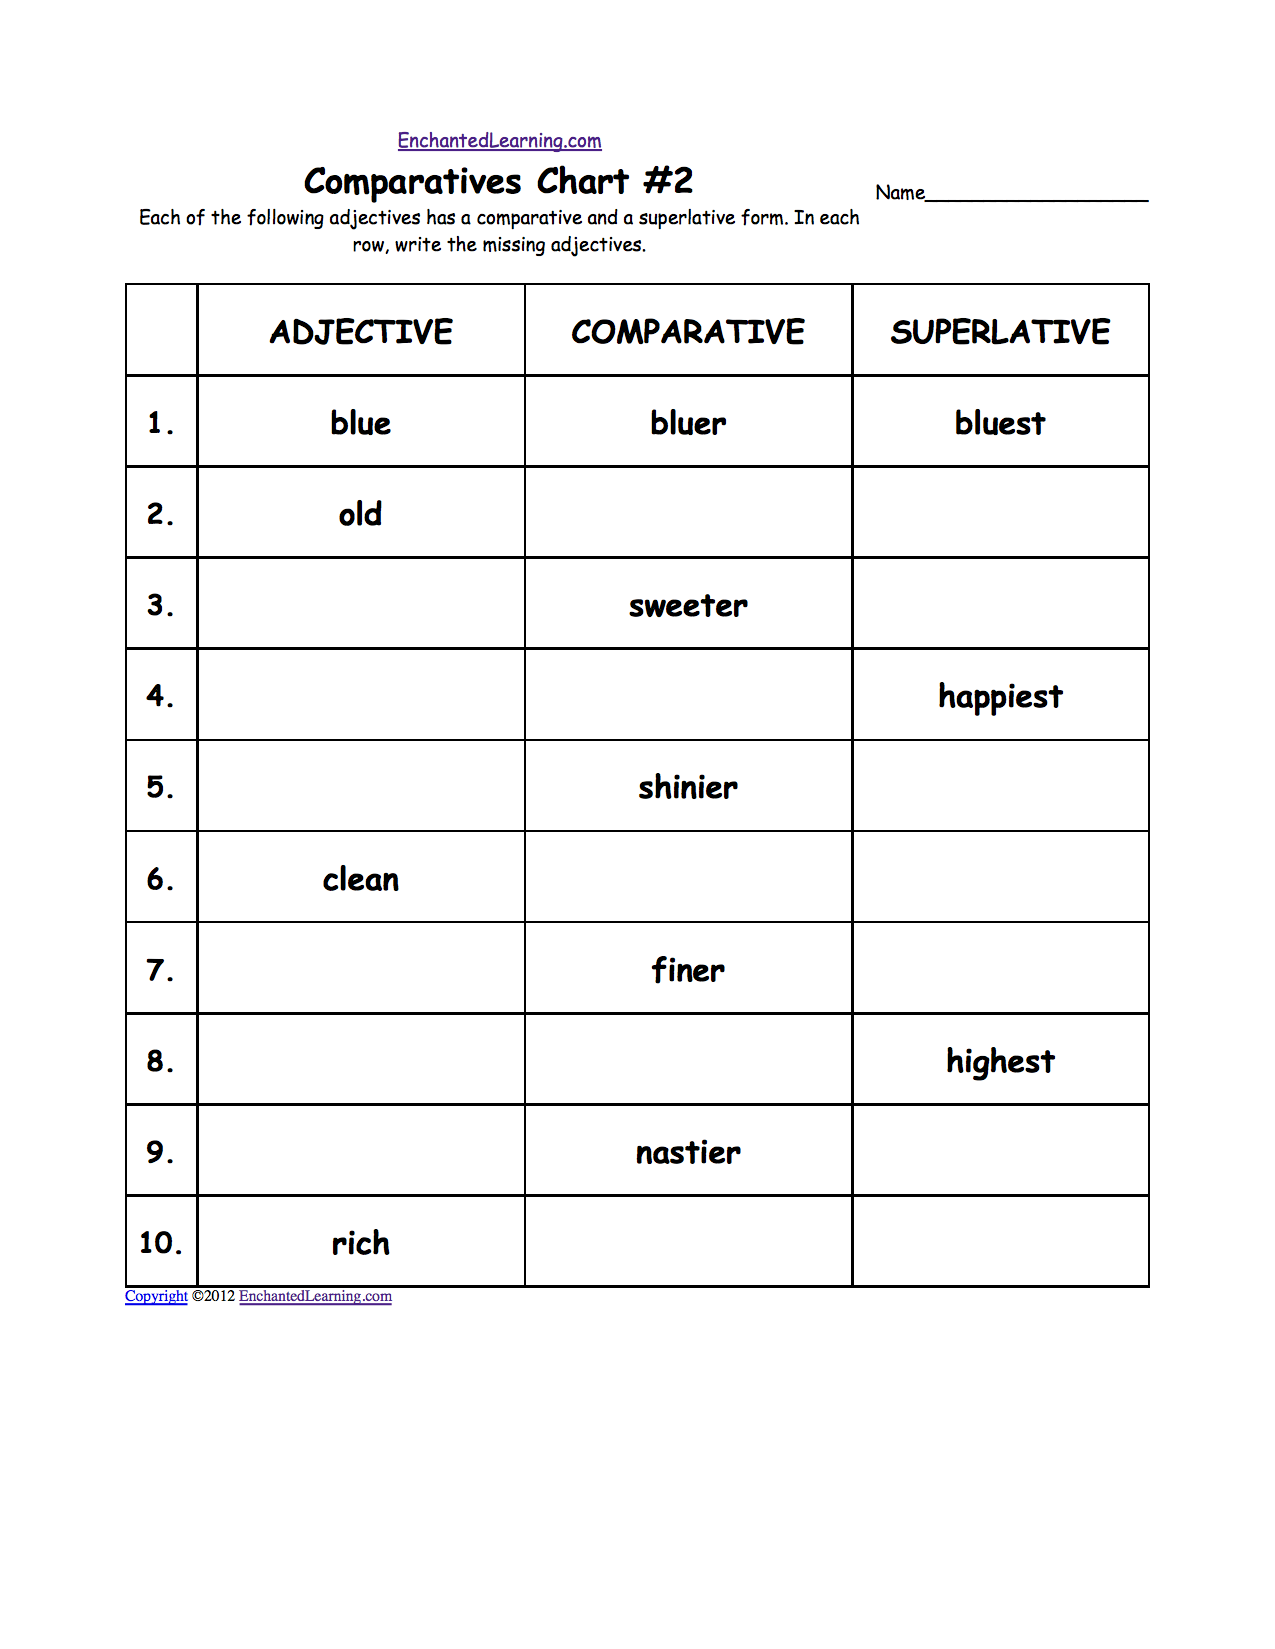 English Exercises   parative   Superlative in addition Superlative Adjectives Worksheet additionally Worksheets On  parative And Superlative Adjectives Adjective further parative and superlative   Interactive worksheet likewise Free Printable   parative and Superlative Adjectives   eTeachers likewise Adjectives Worksheets    parative and Superlative Adjectives also parative and Superlative Adjectives Worksheets   Education likewise parative and Superlative Adjectives   ESL worksheet by VaneV further parative and Superlative Adjectives Worksheet as well  likewise parative and Superlative Adjectives  TONS of great printables for further  together with Adjectives Worksheets  parative Superlative Worksheet And Middle besides parative and Superlative Adjectives Worksheet Printout further Superlative Adjectives Worksheet besides Adjectives Worksheets    parative and Superlative Adjectives. on comparative and superlative adjectives worksheet